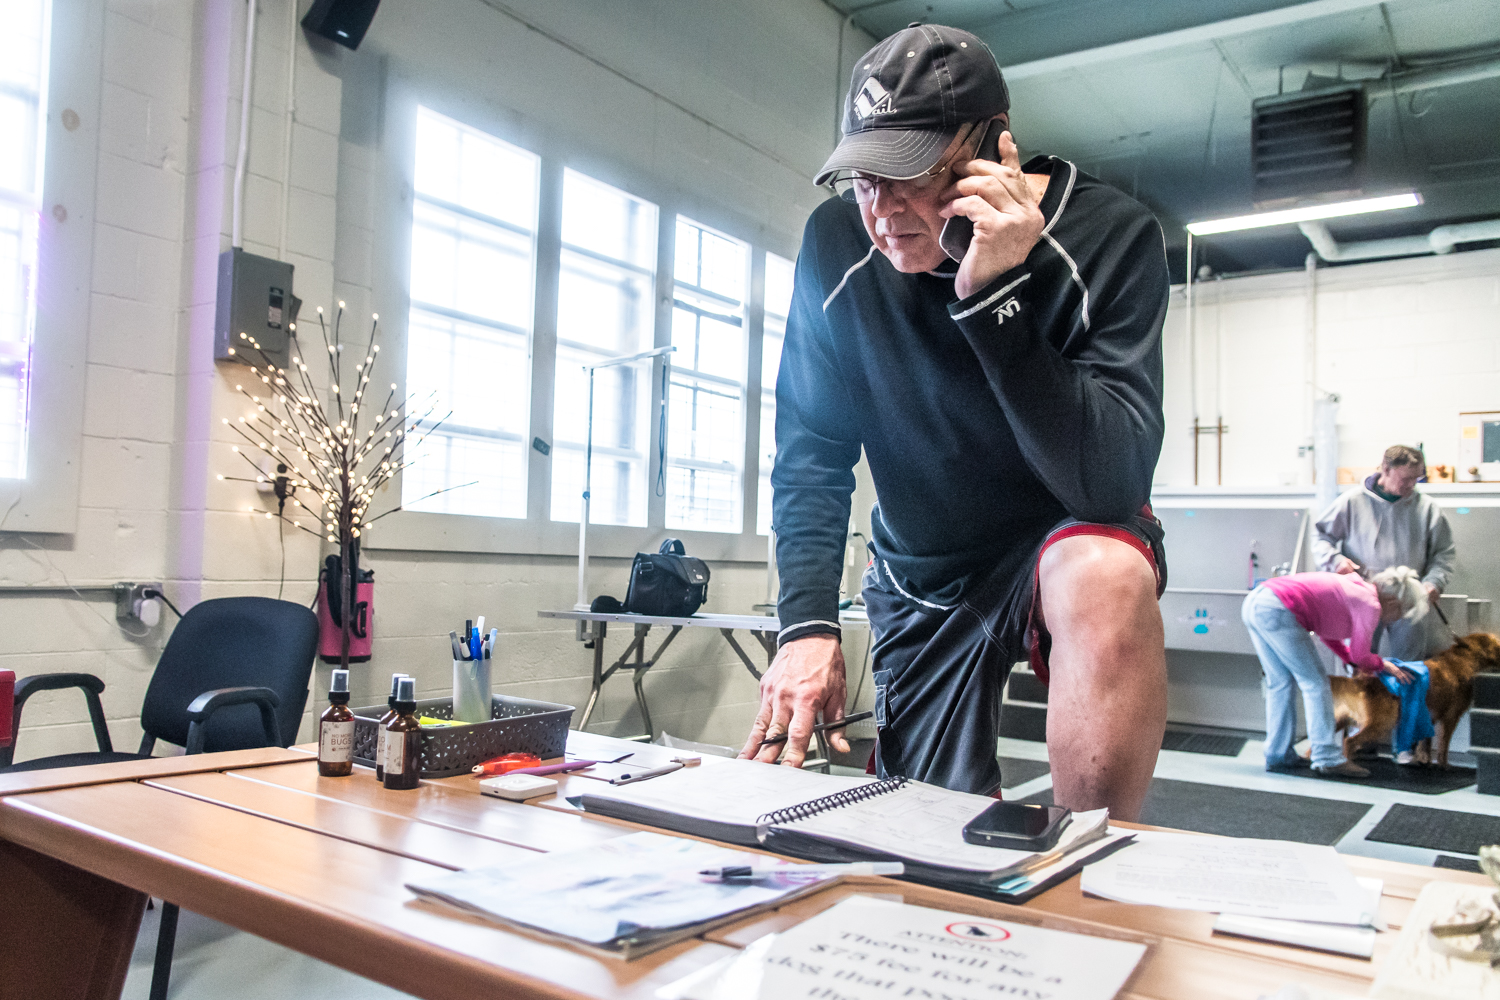 Owner of Club Aqua Paws, Mike Iwon, Racine, takes calls between clients at his business on Lathrop Ave in Downtown Racine.